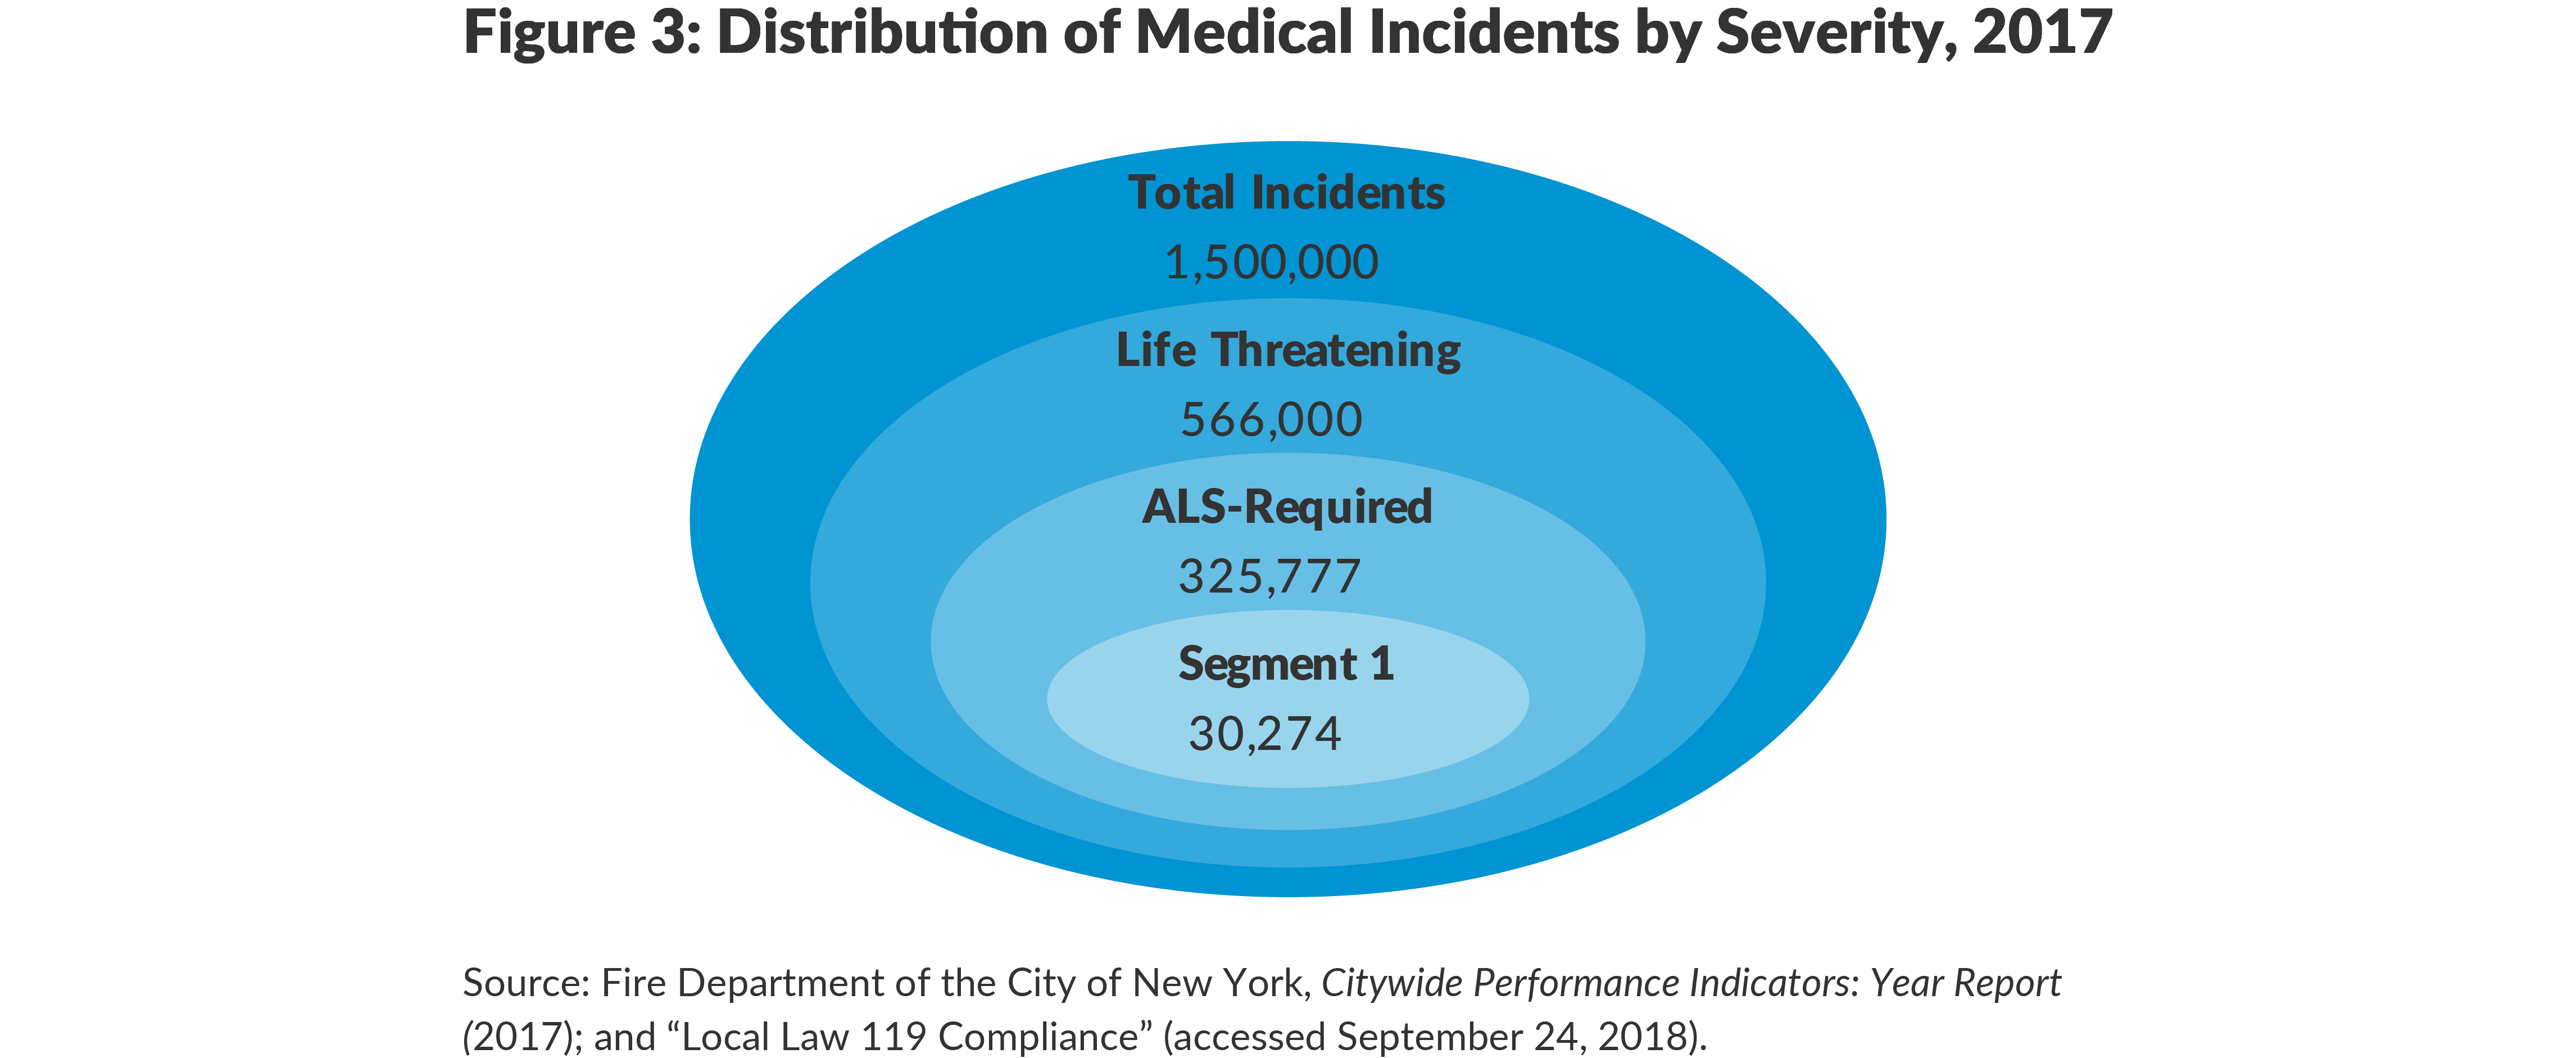 Figure 3: Distribution of Medical Incidents by Severity, 2017